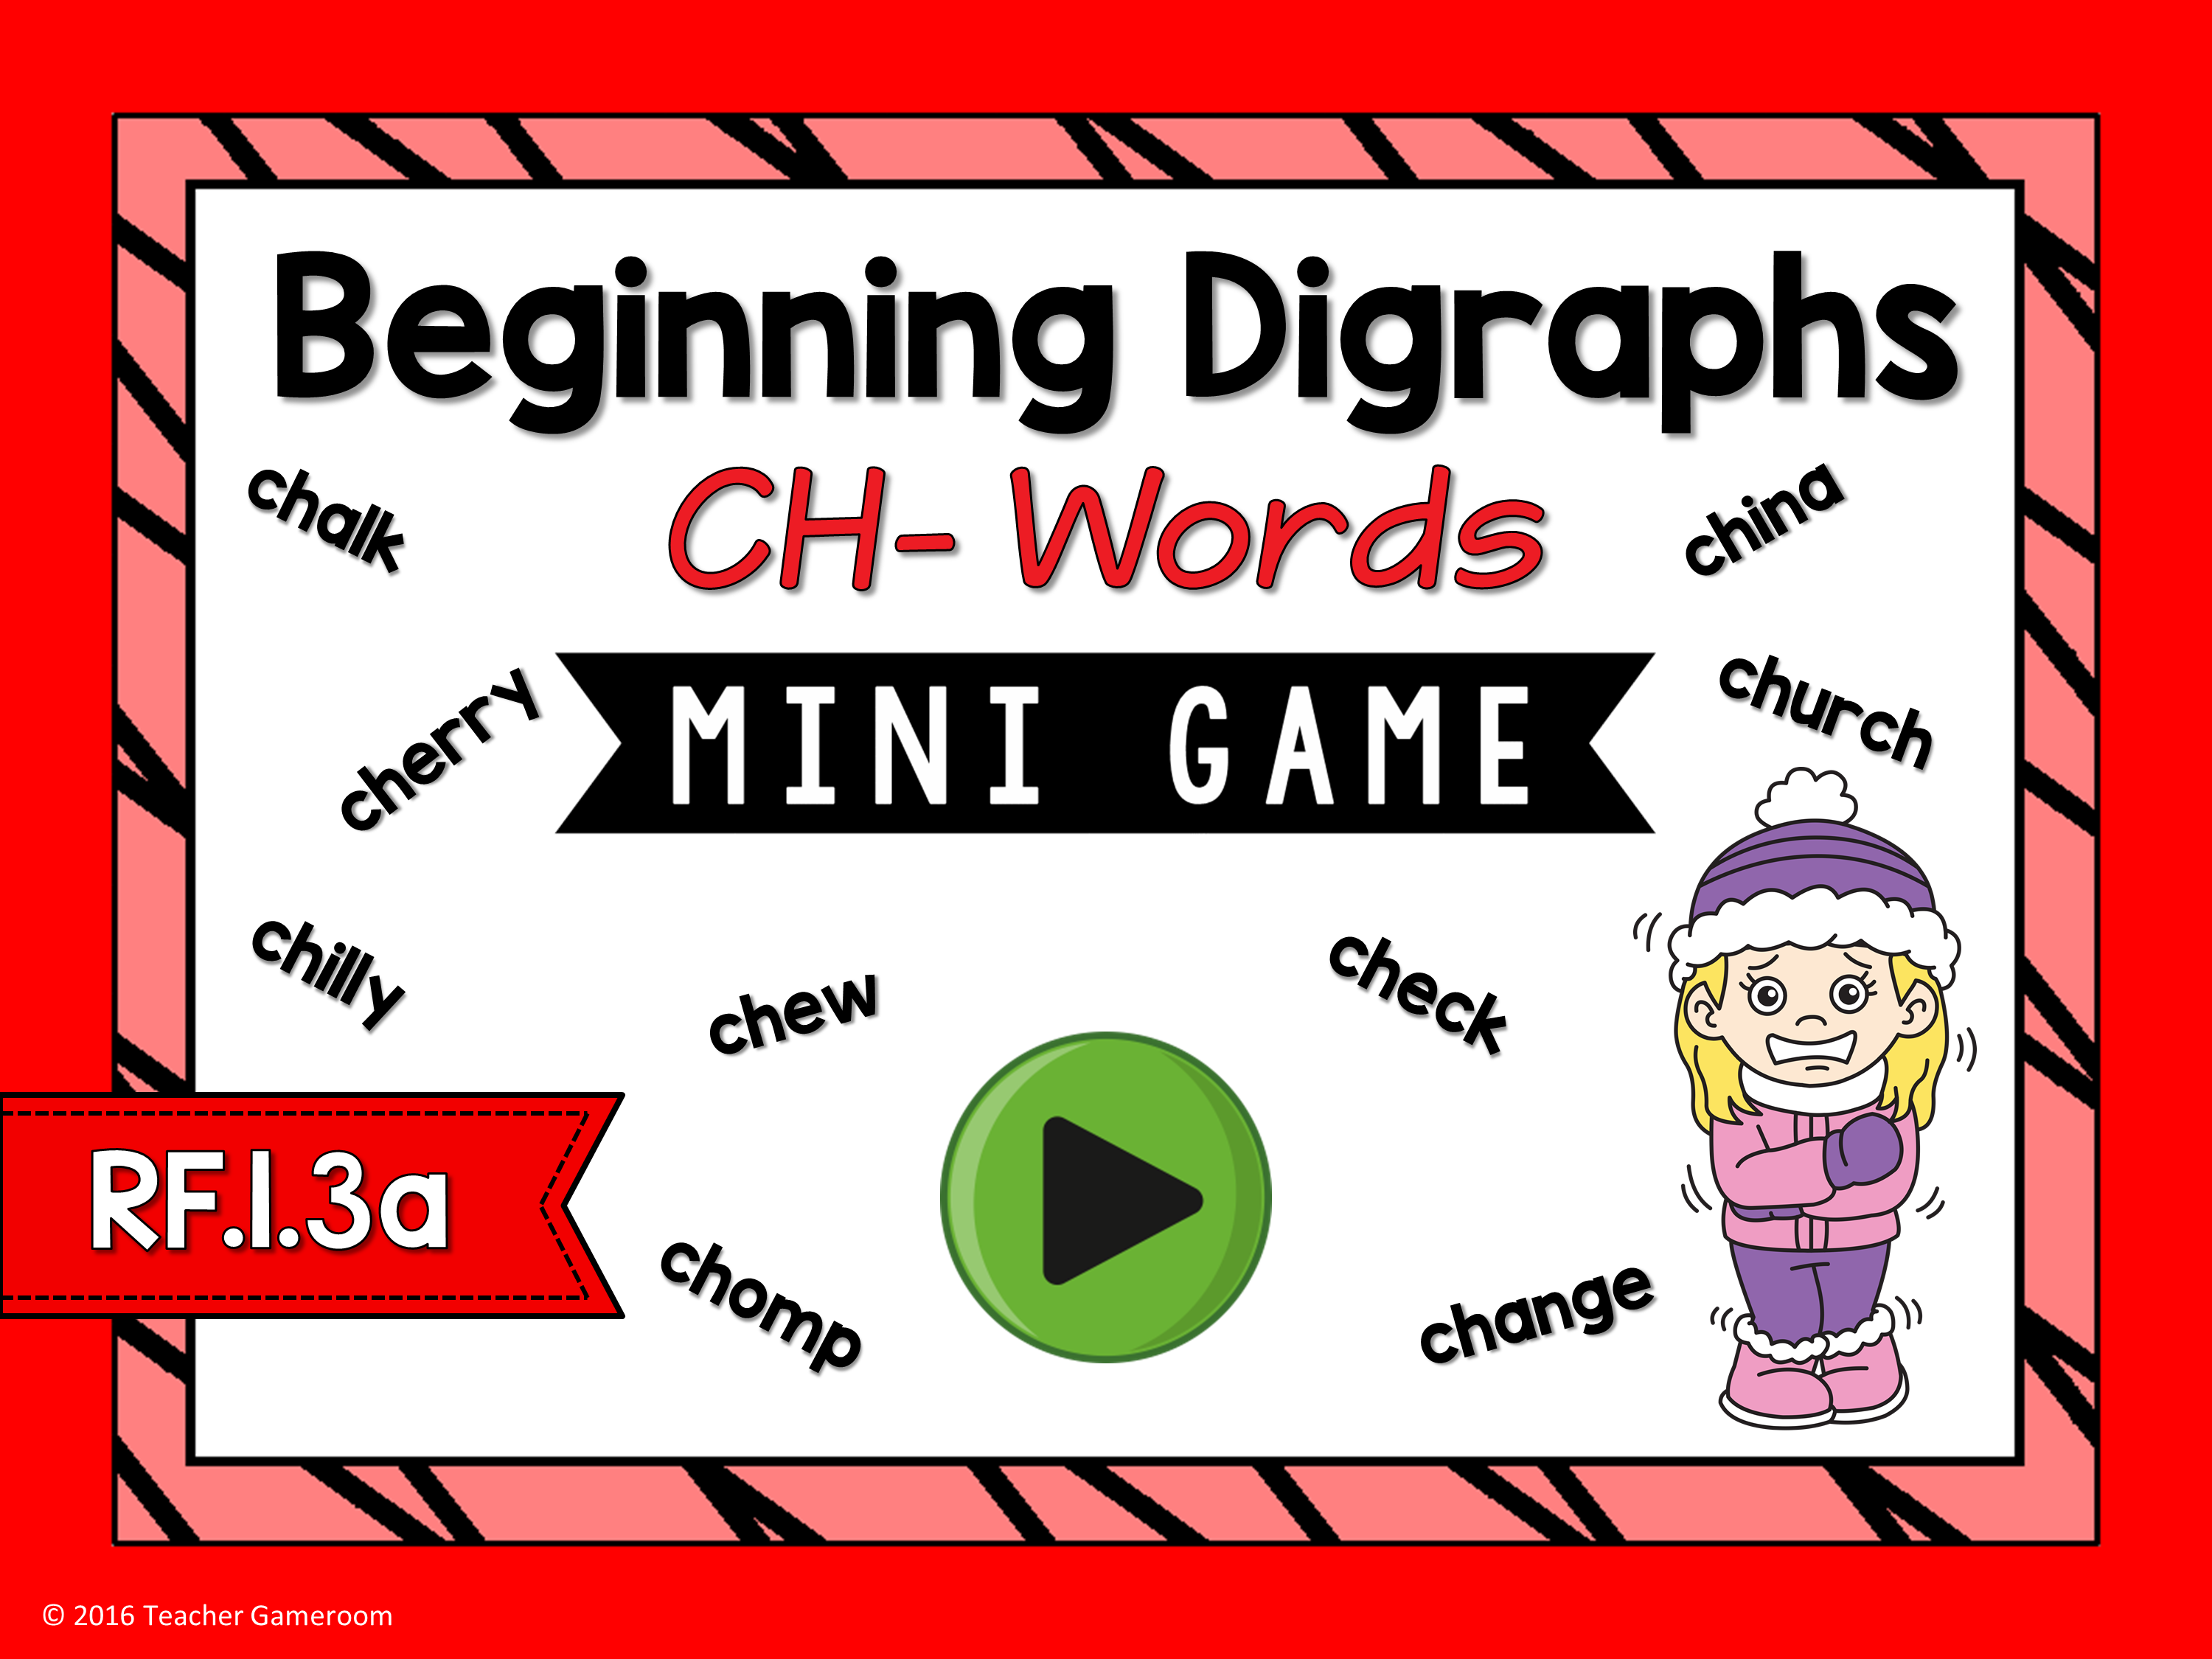 Beginning Digraphs Ch- Words Mini Game